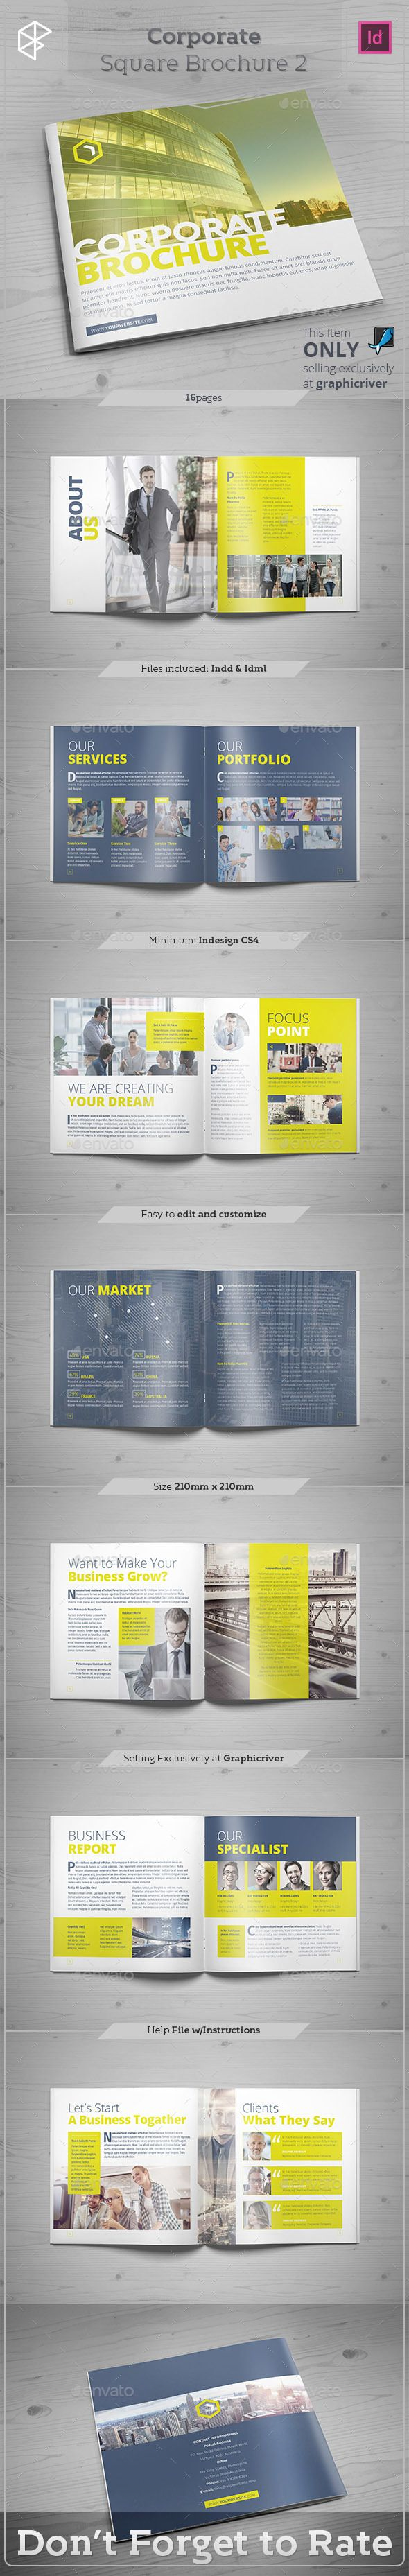 Corporate Square Brochure Template InDesign INDD #design Download…